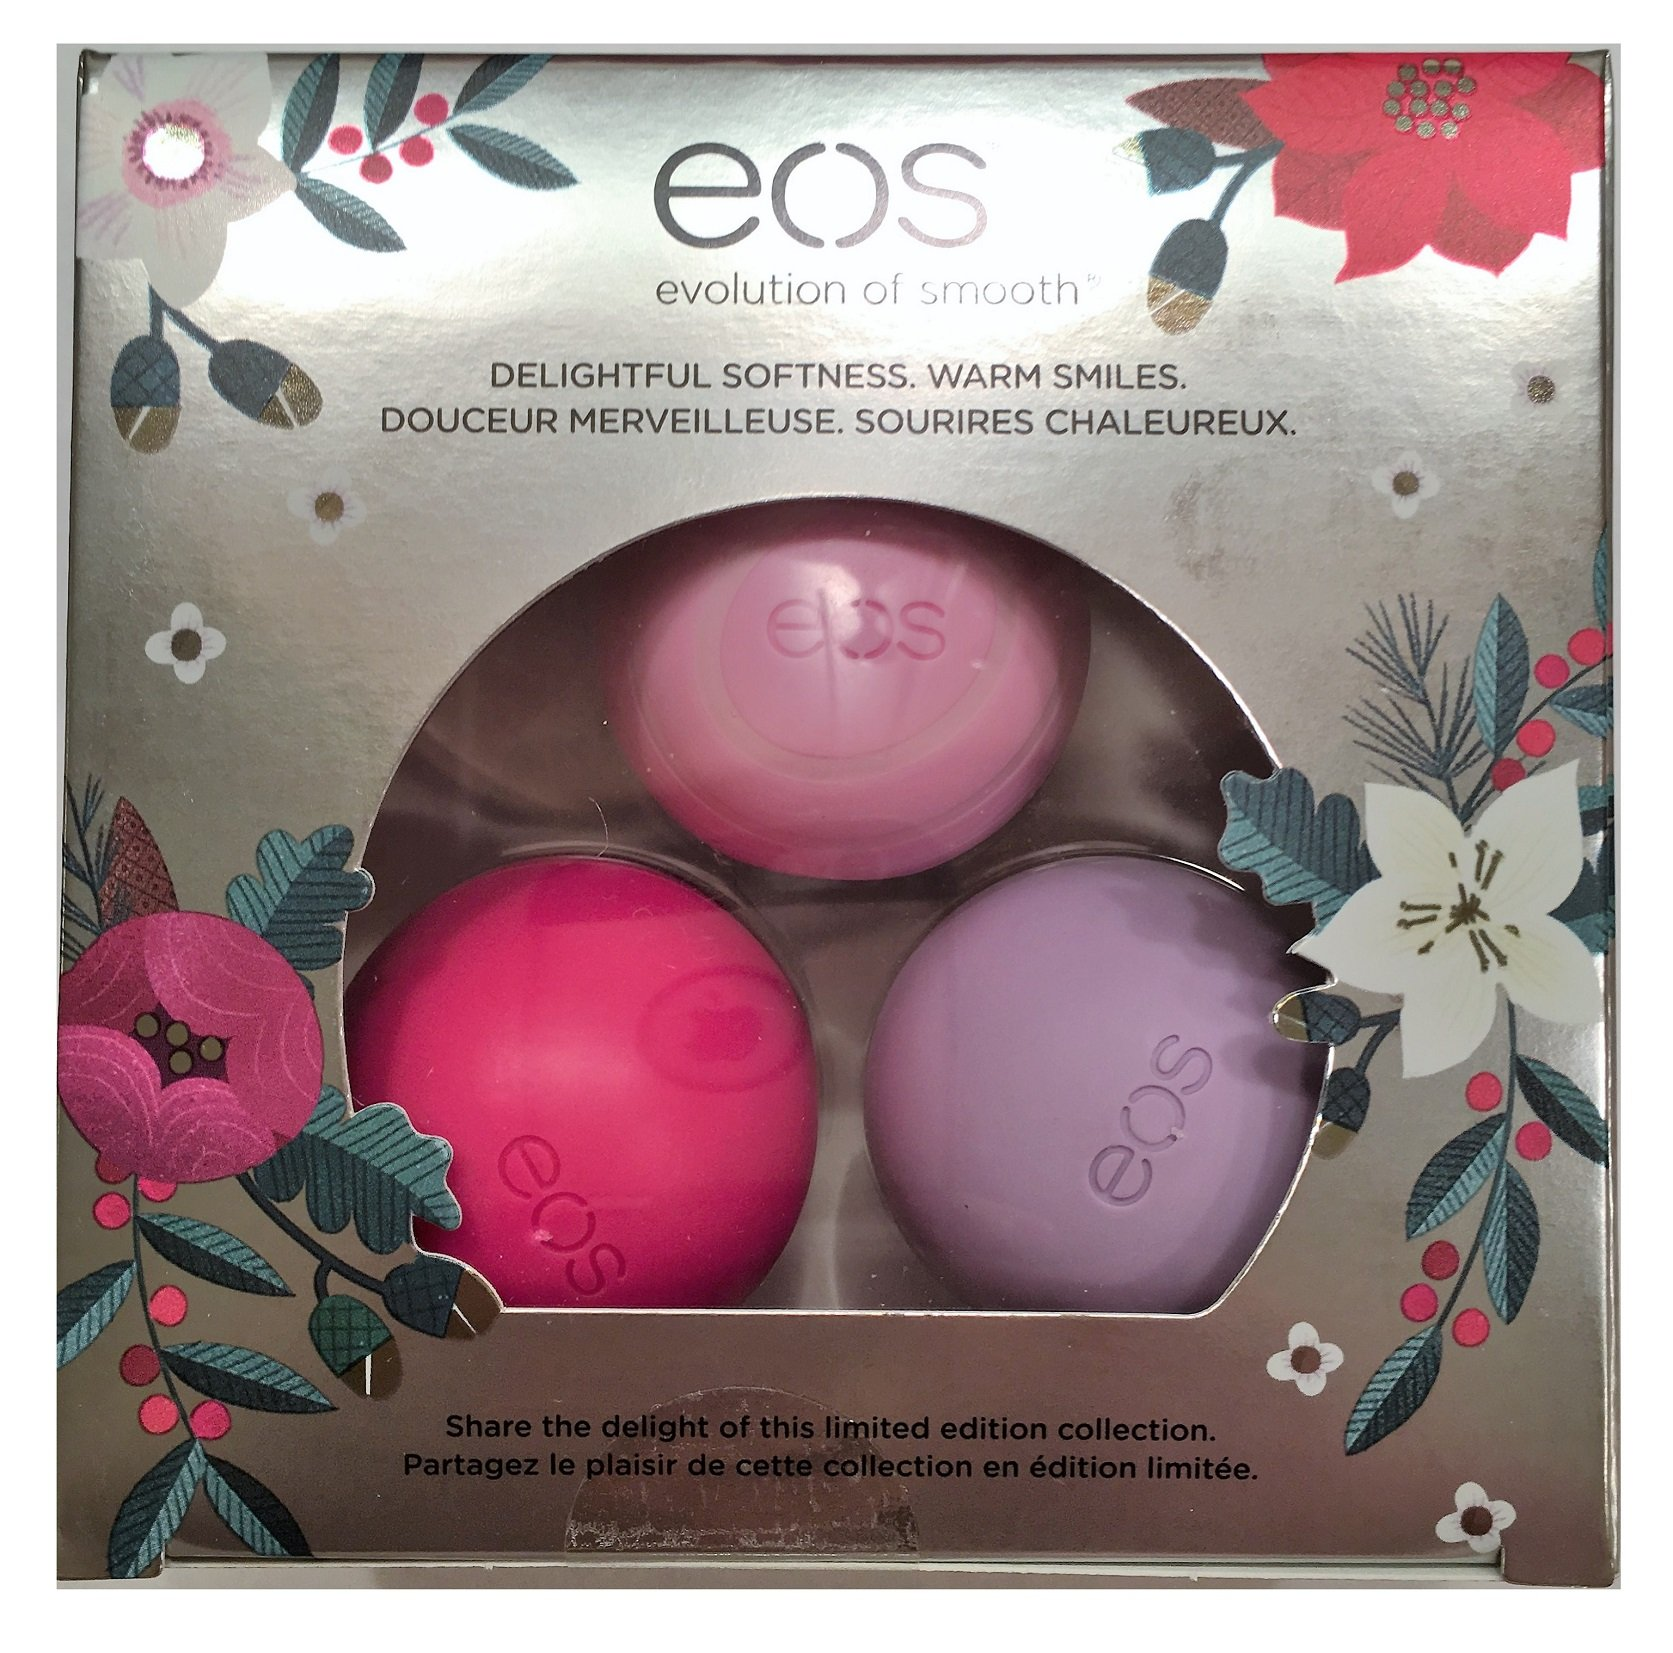 eos 2016 Limited Edition Holiday Lip Balm Sphere collection 3-Pack, Honey Apple, Wildberry, Passion Fruit, Multi Pack